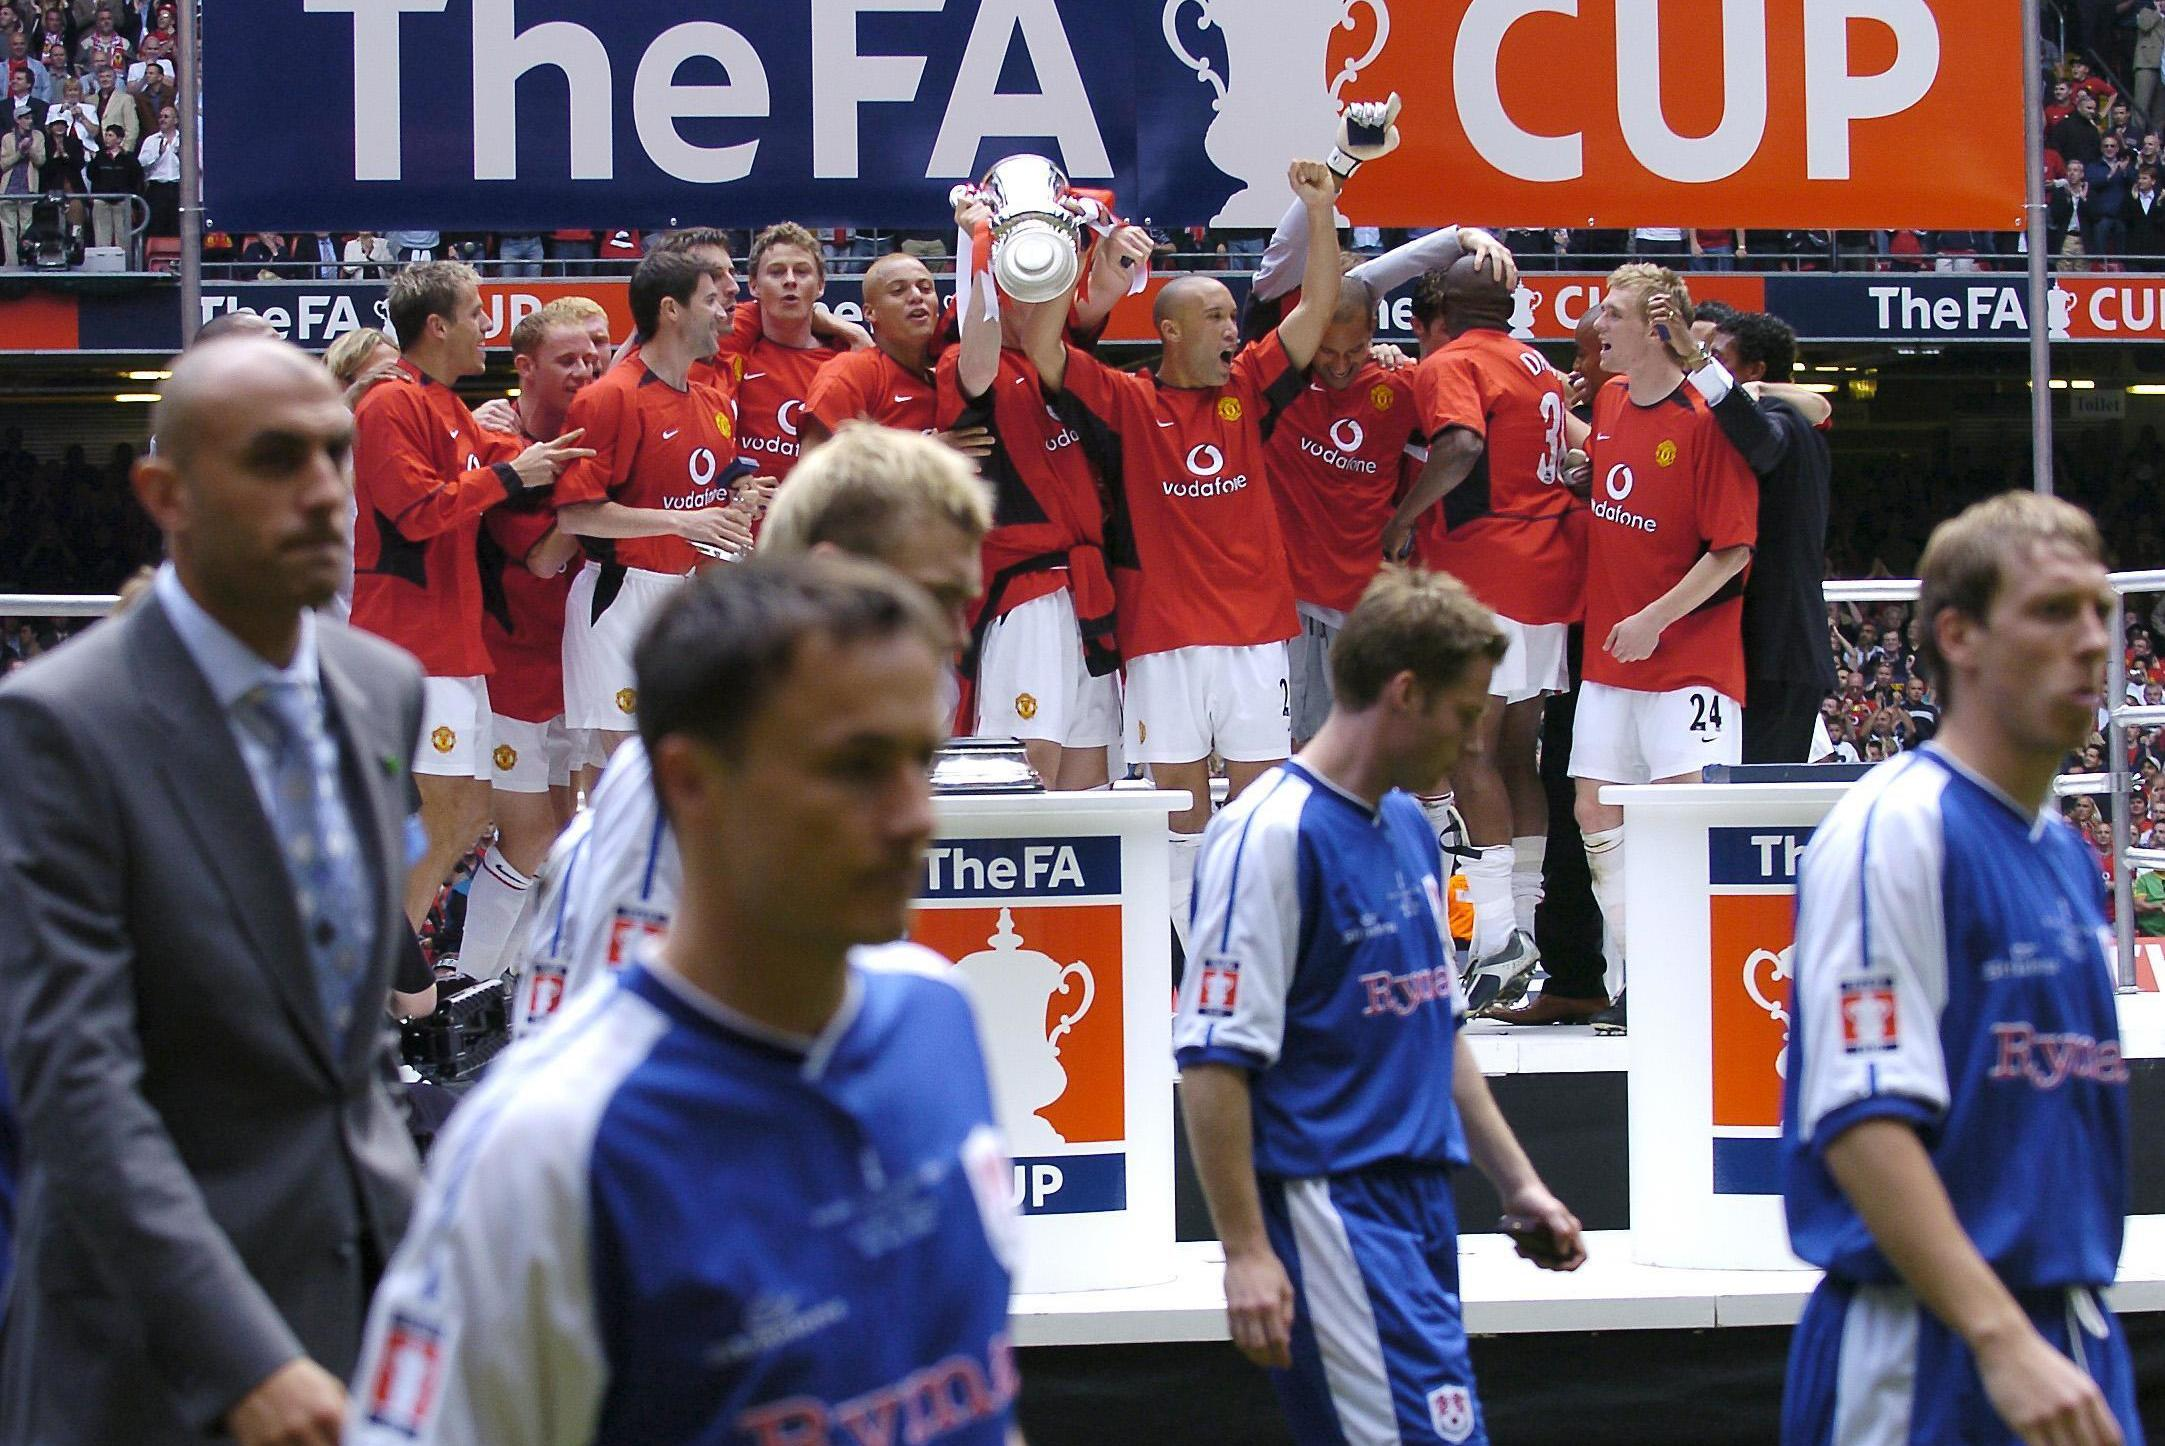 New Zealand, Kansas, London Underground: Where are Millwall's 2004 FA Cup finalists?